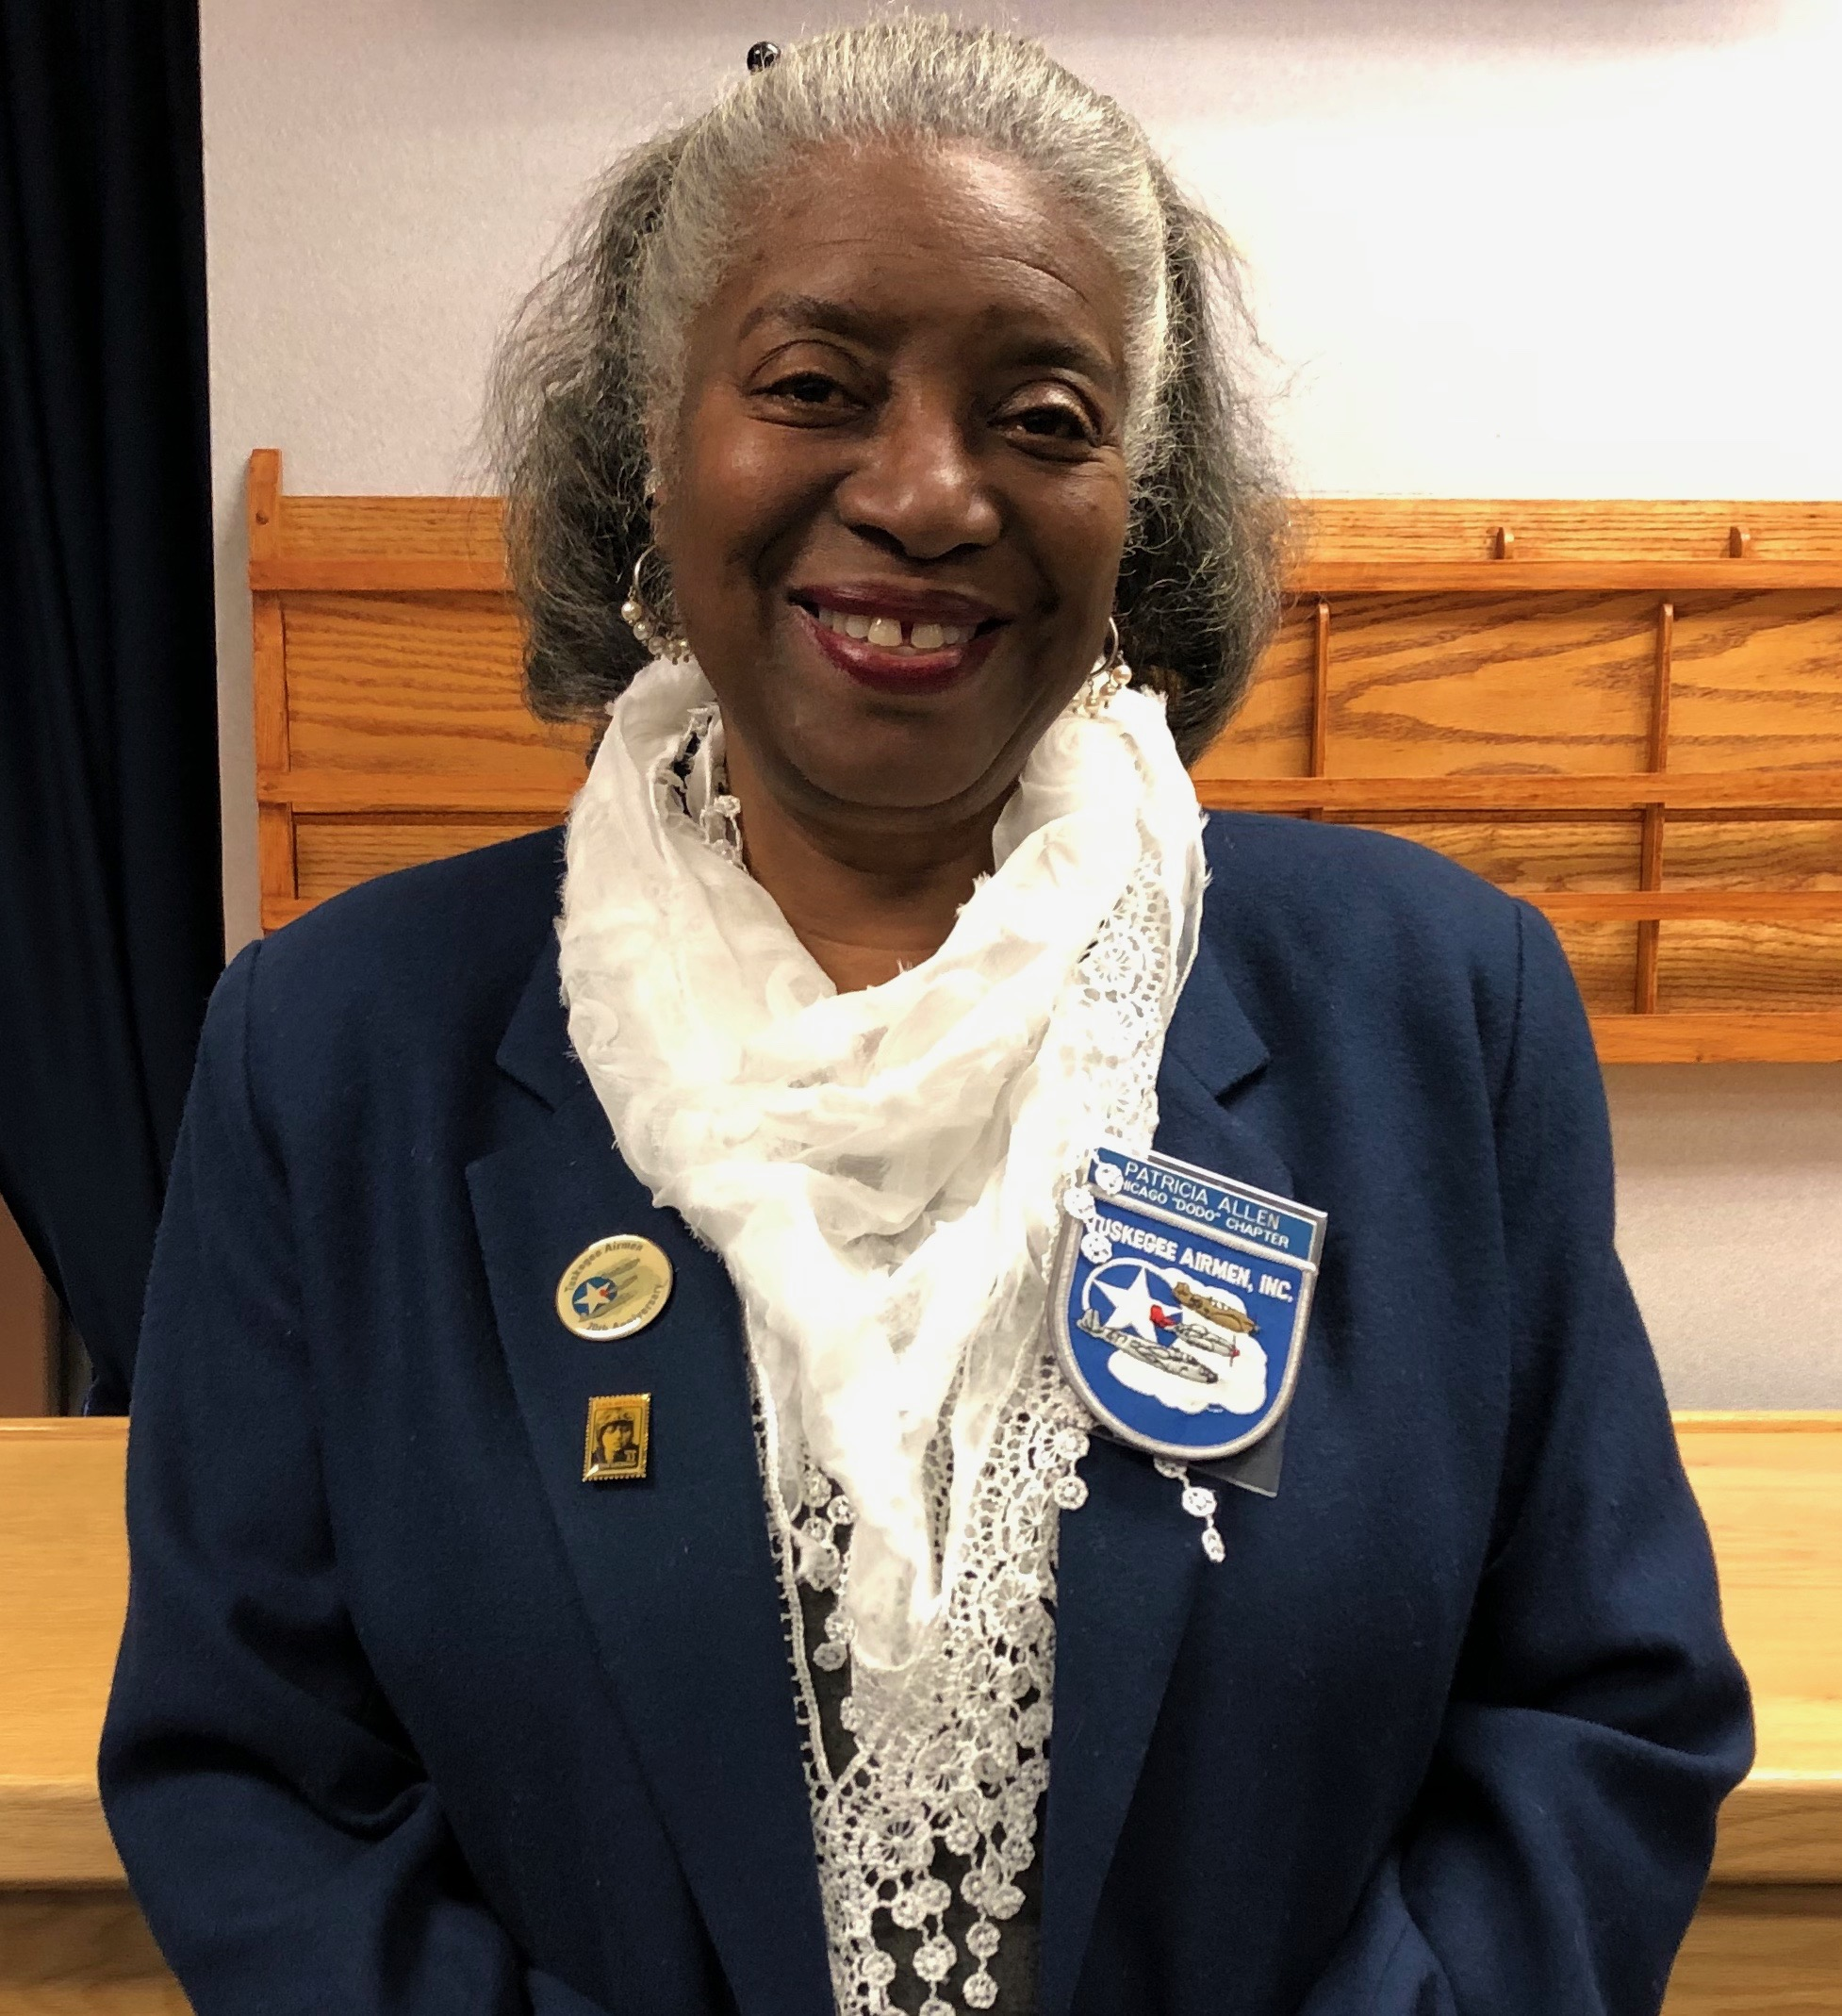 Patricia Allen, Treasurer, African-American history, military history, aviation history